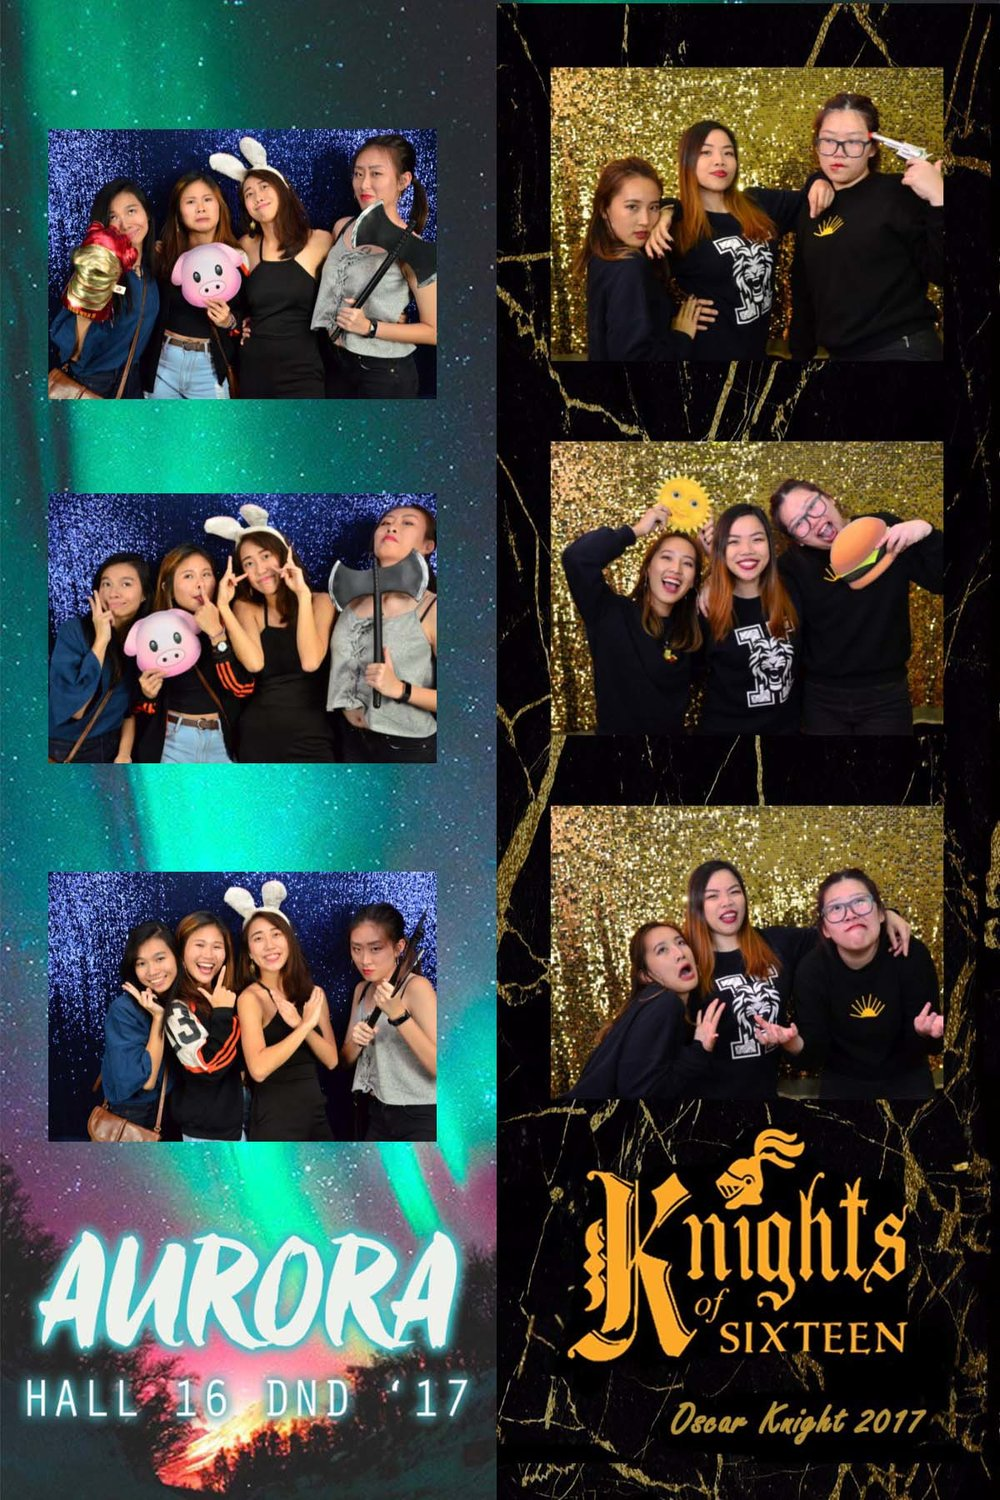 Photobooth - Fun, unique and vibrant photobooth services coupled with theme-suited props and personalized backdrops at your service!SEE MORE